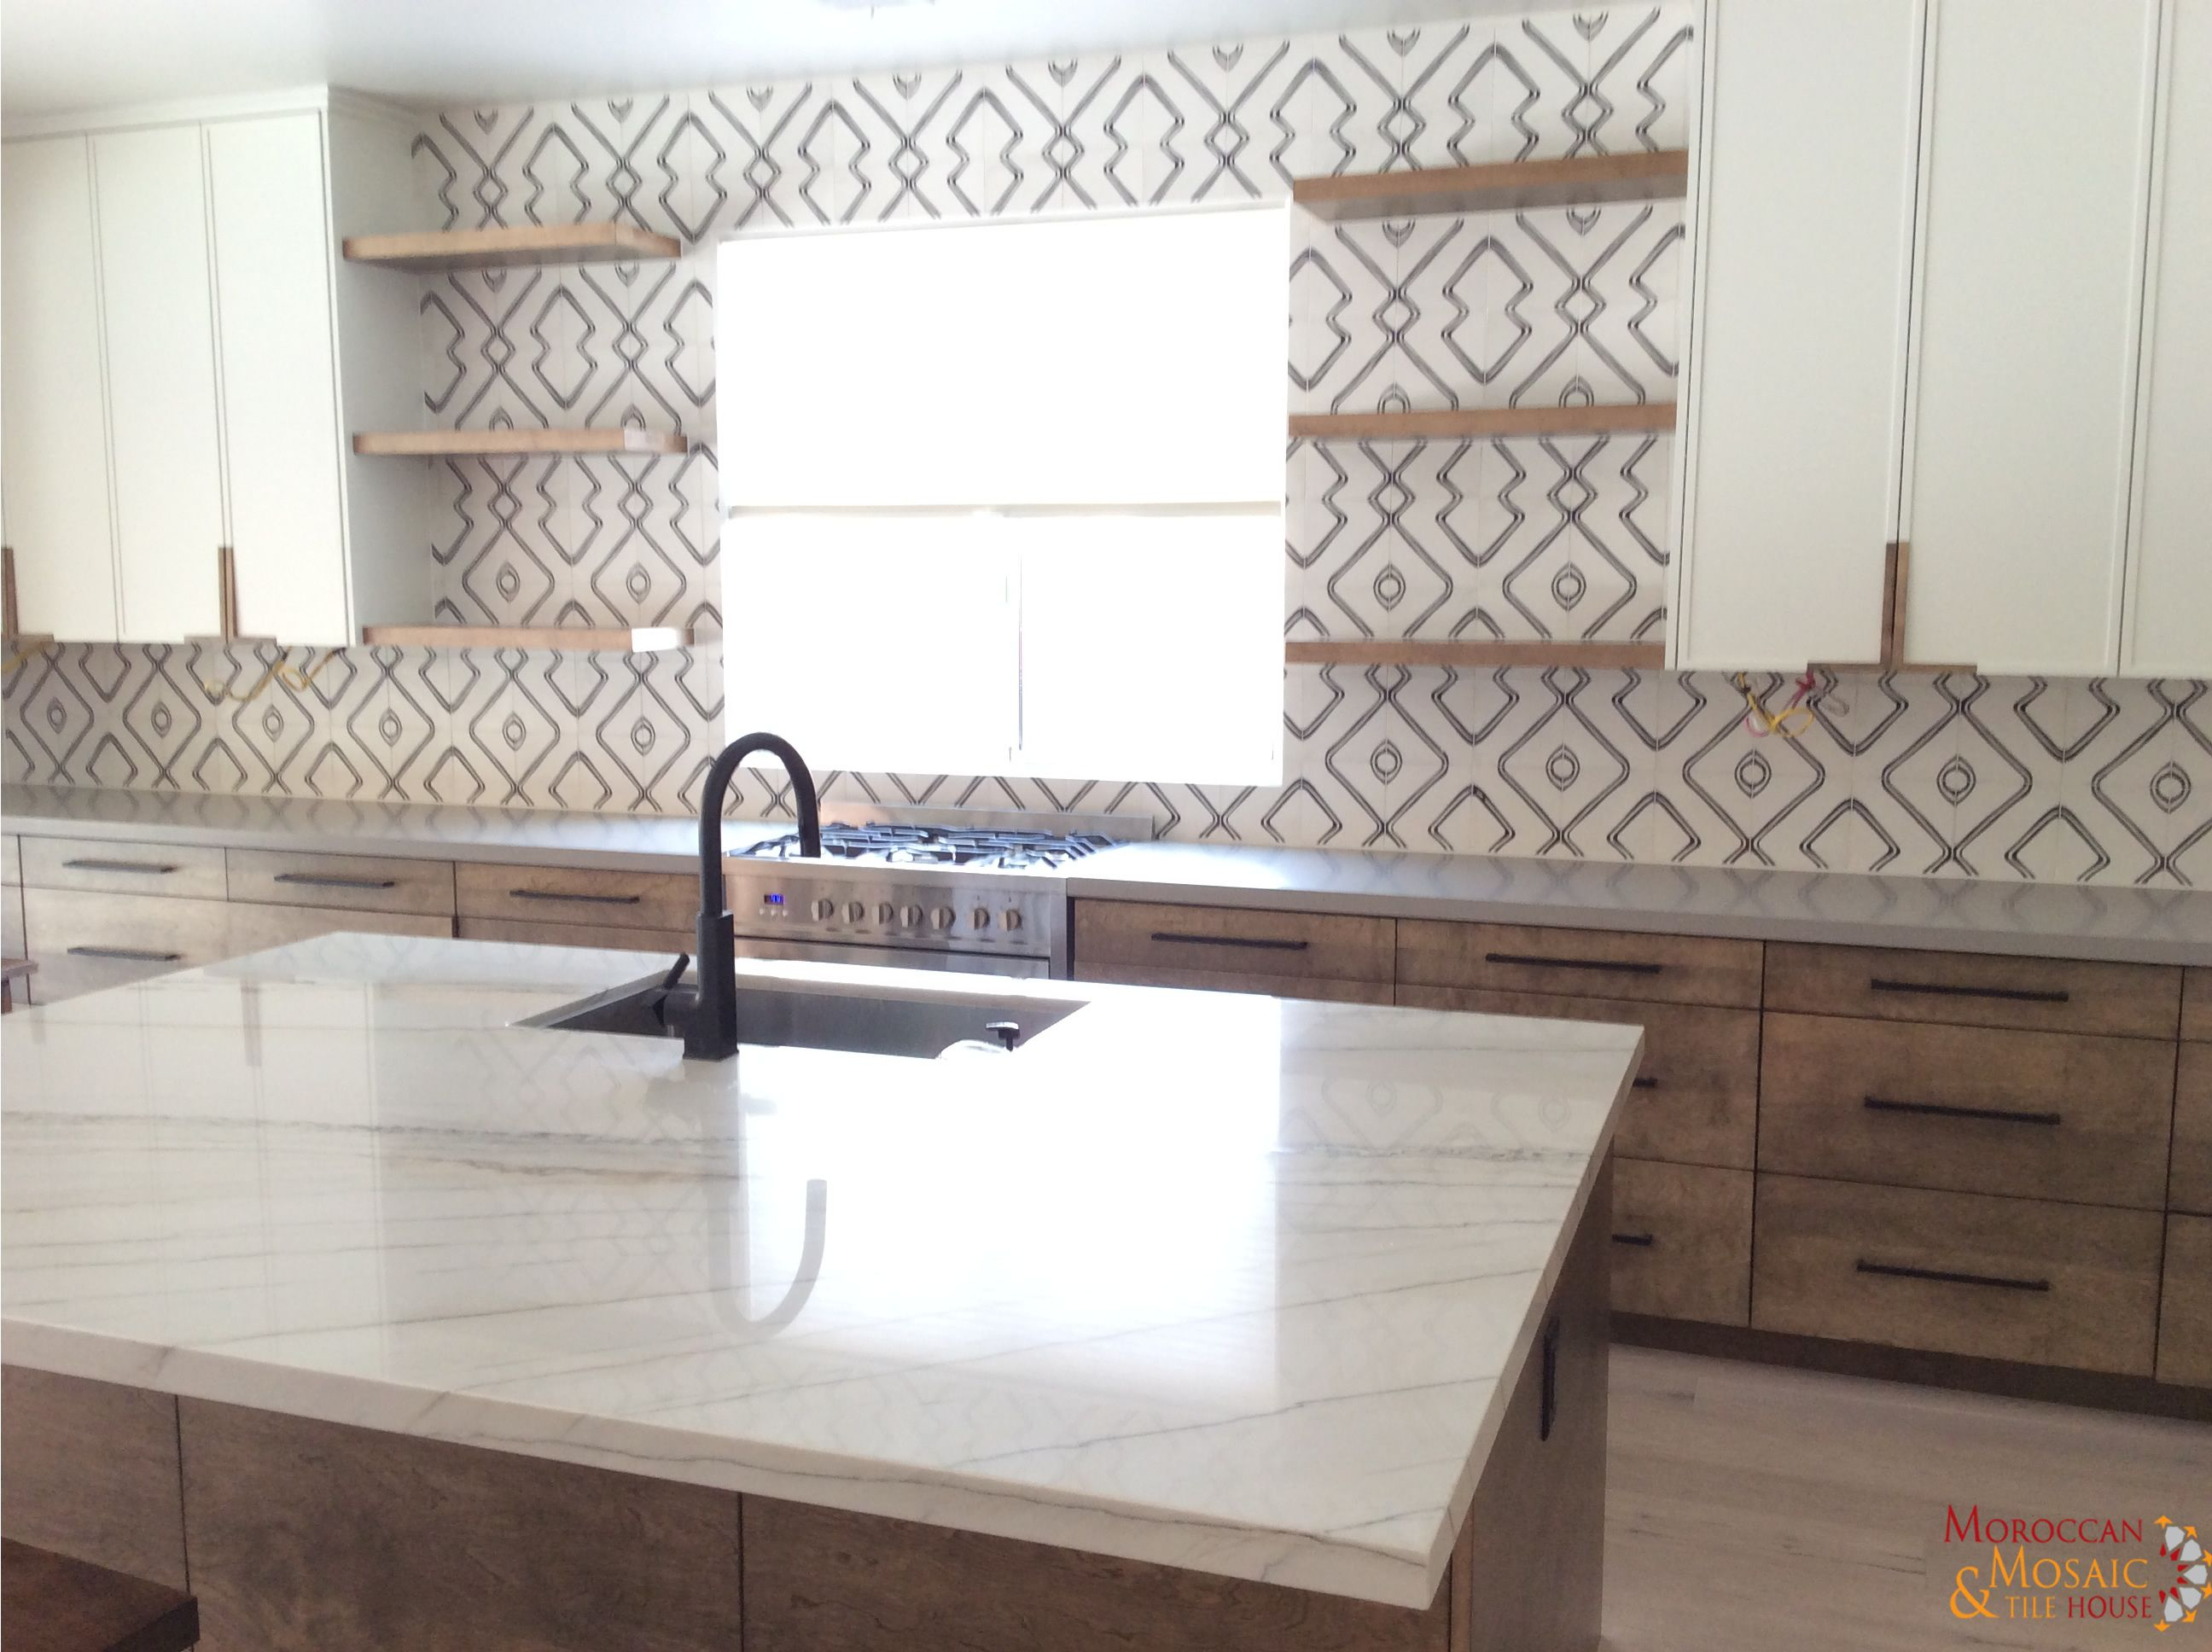 Pin by Emma Miller on cement tile | Pinterest | Downstairs bathroom ...